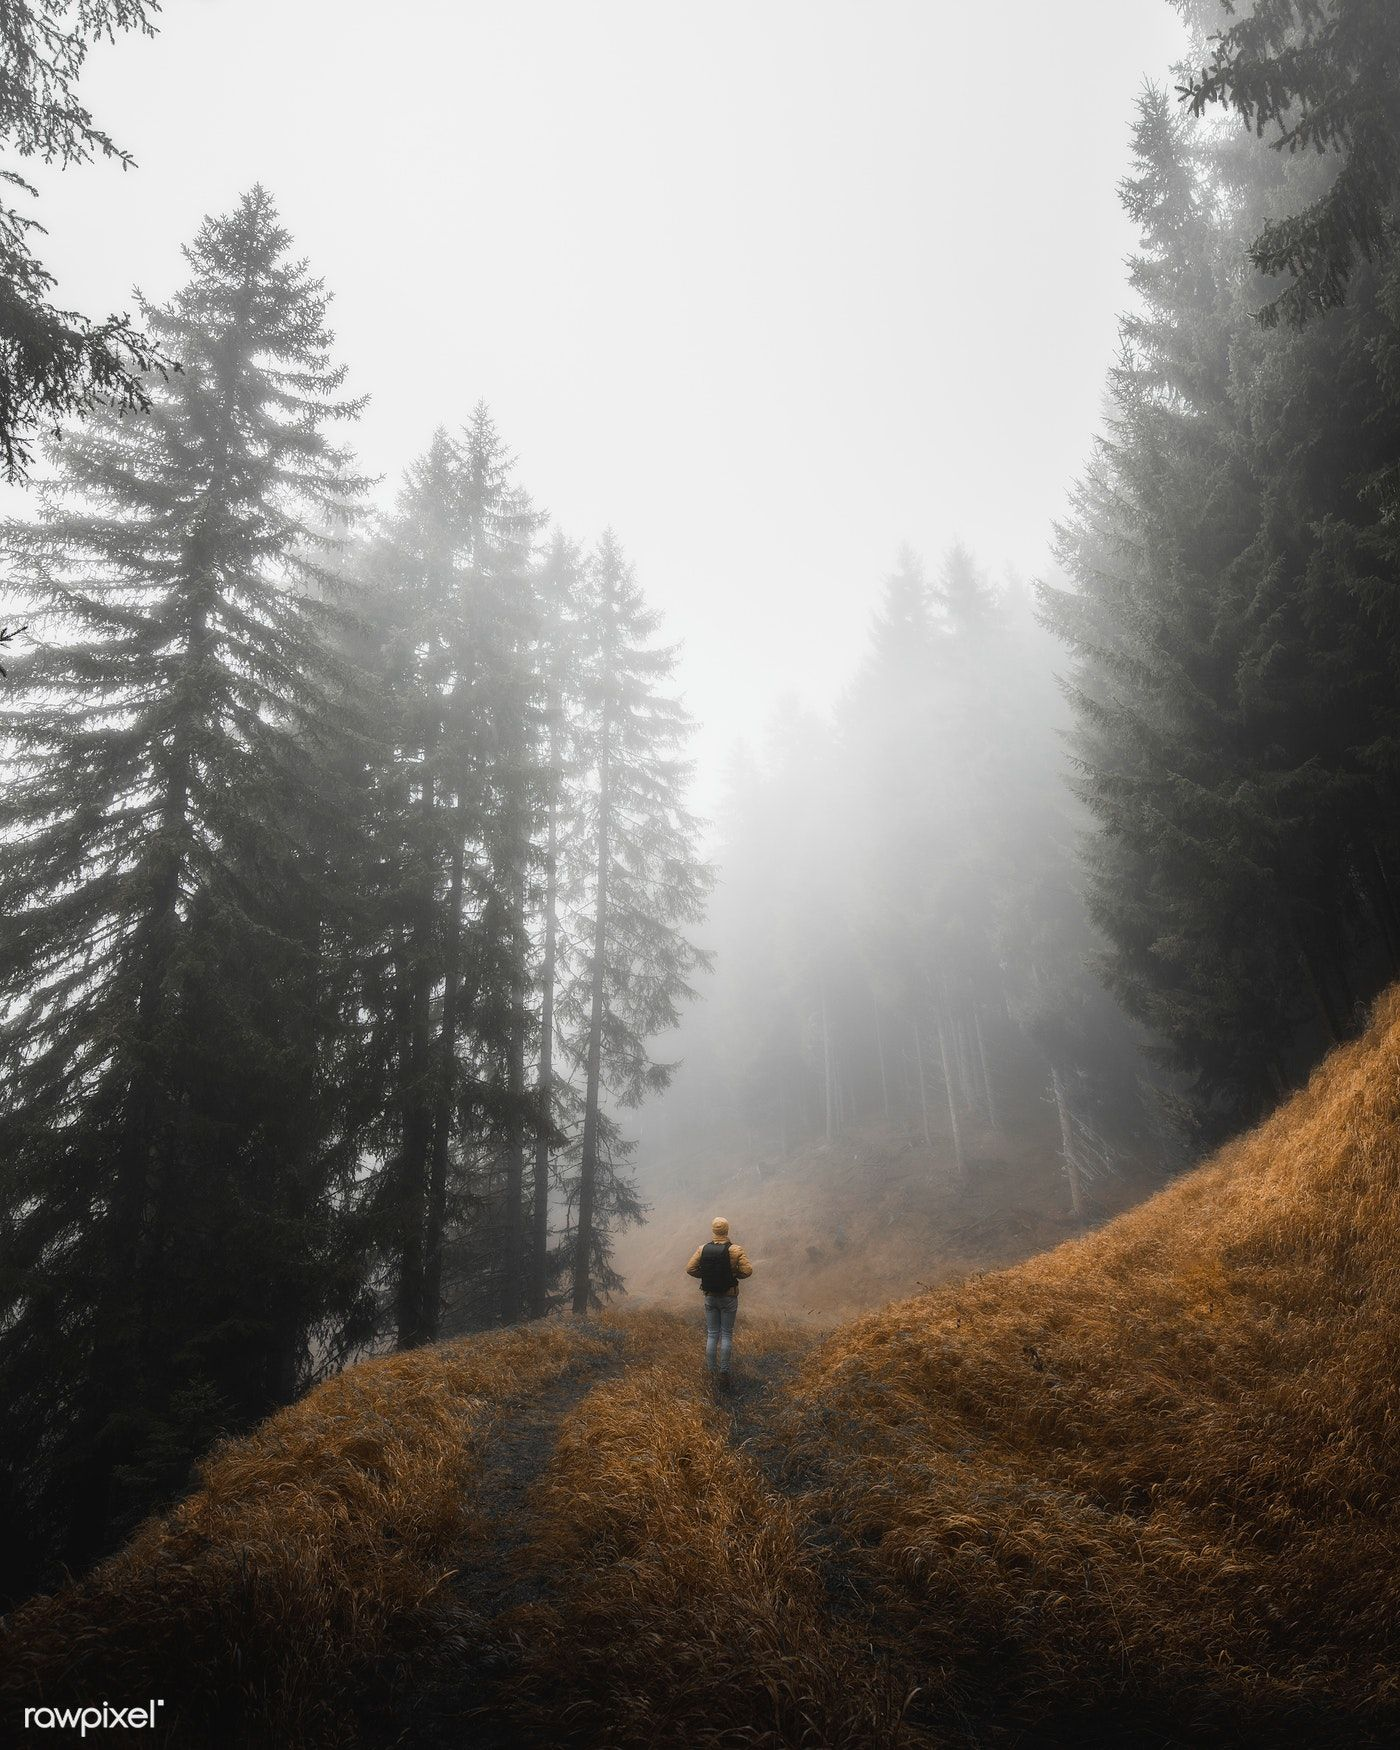 Download Premium Photo Of Man Walking In The Misty Woods In The